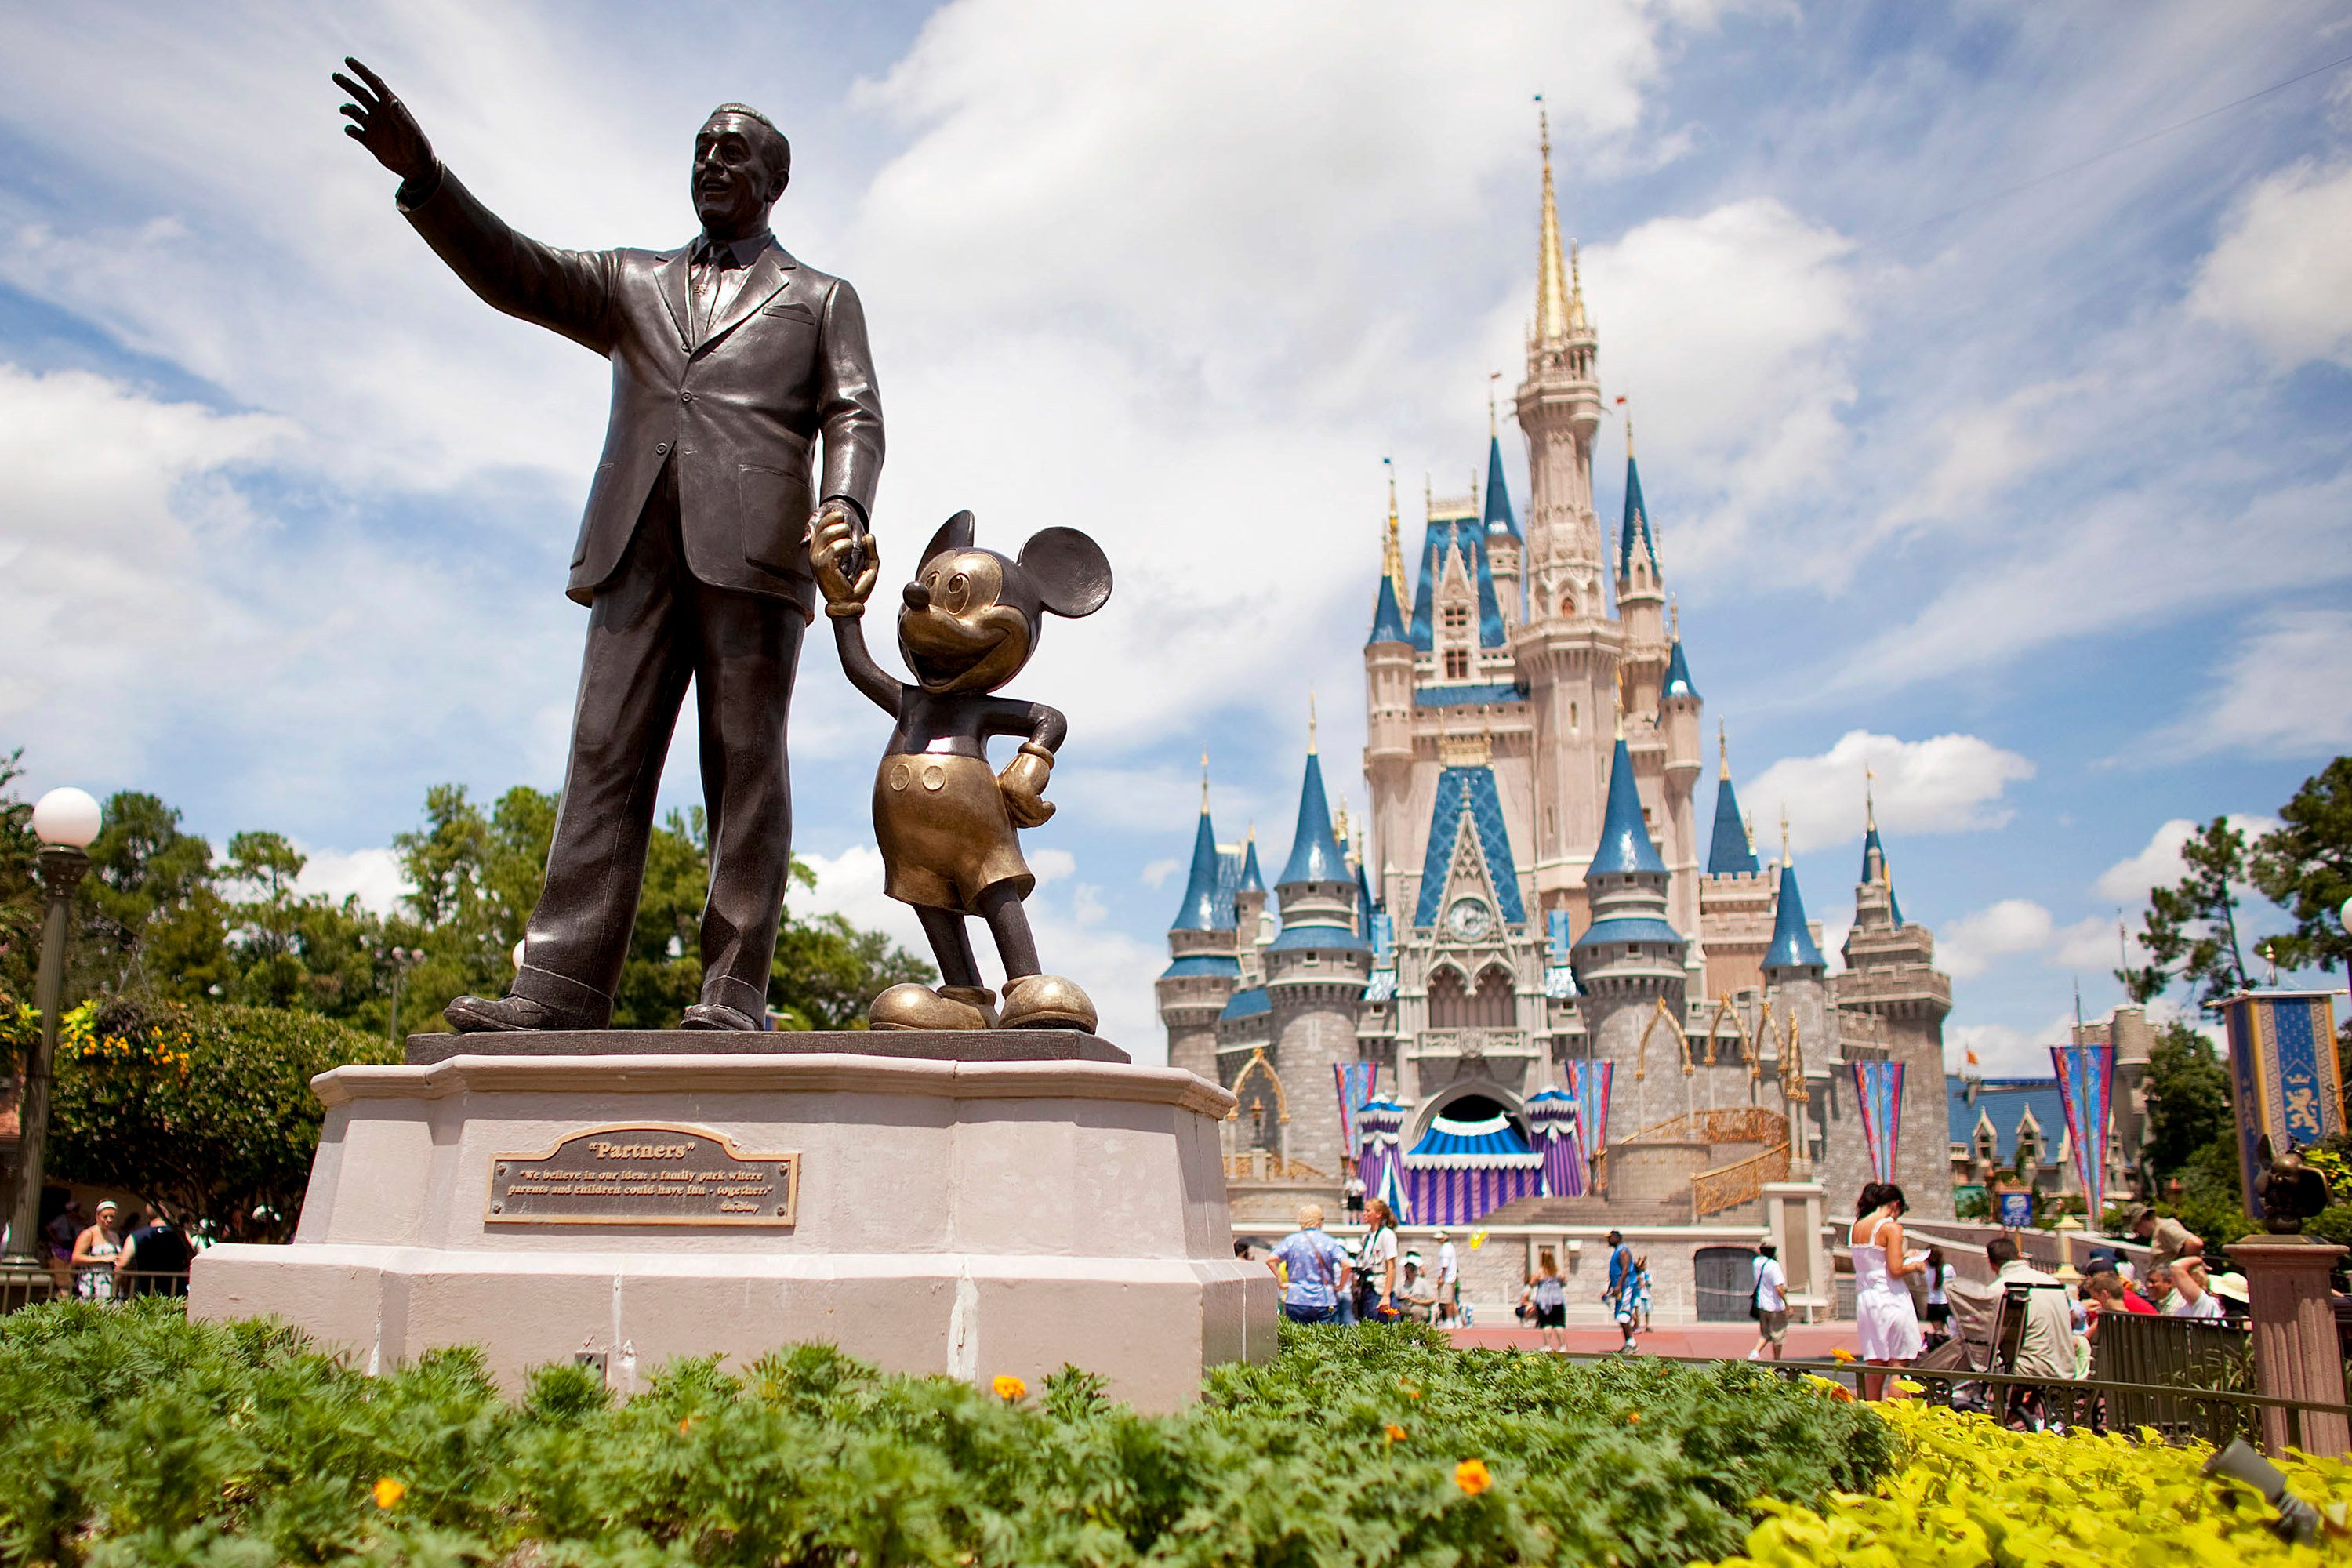 It'sgoing to be a little more expensive to enjoy this view, as Disney has raised prices at its U.S. theme parks again.